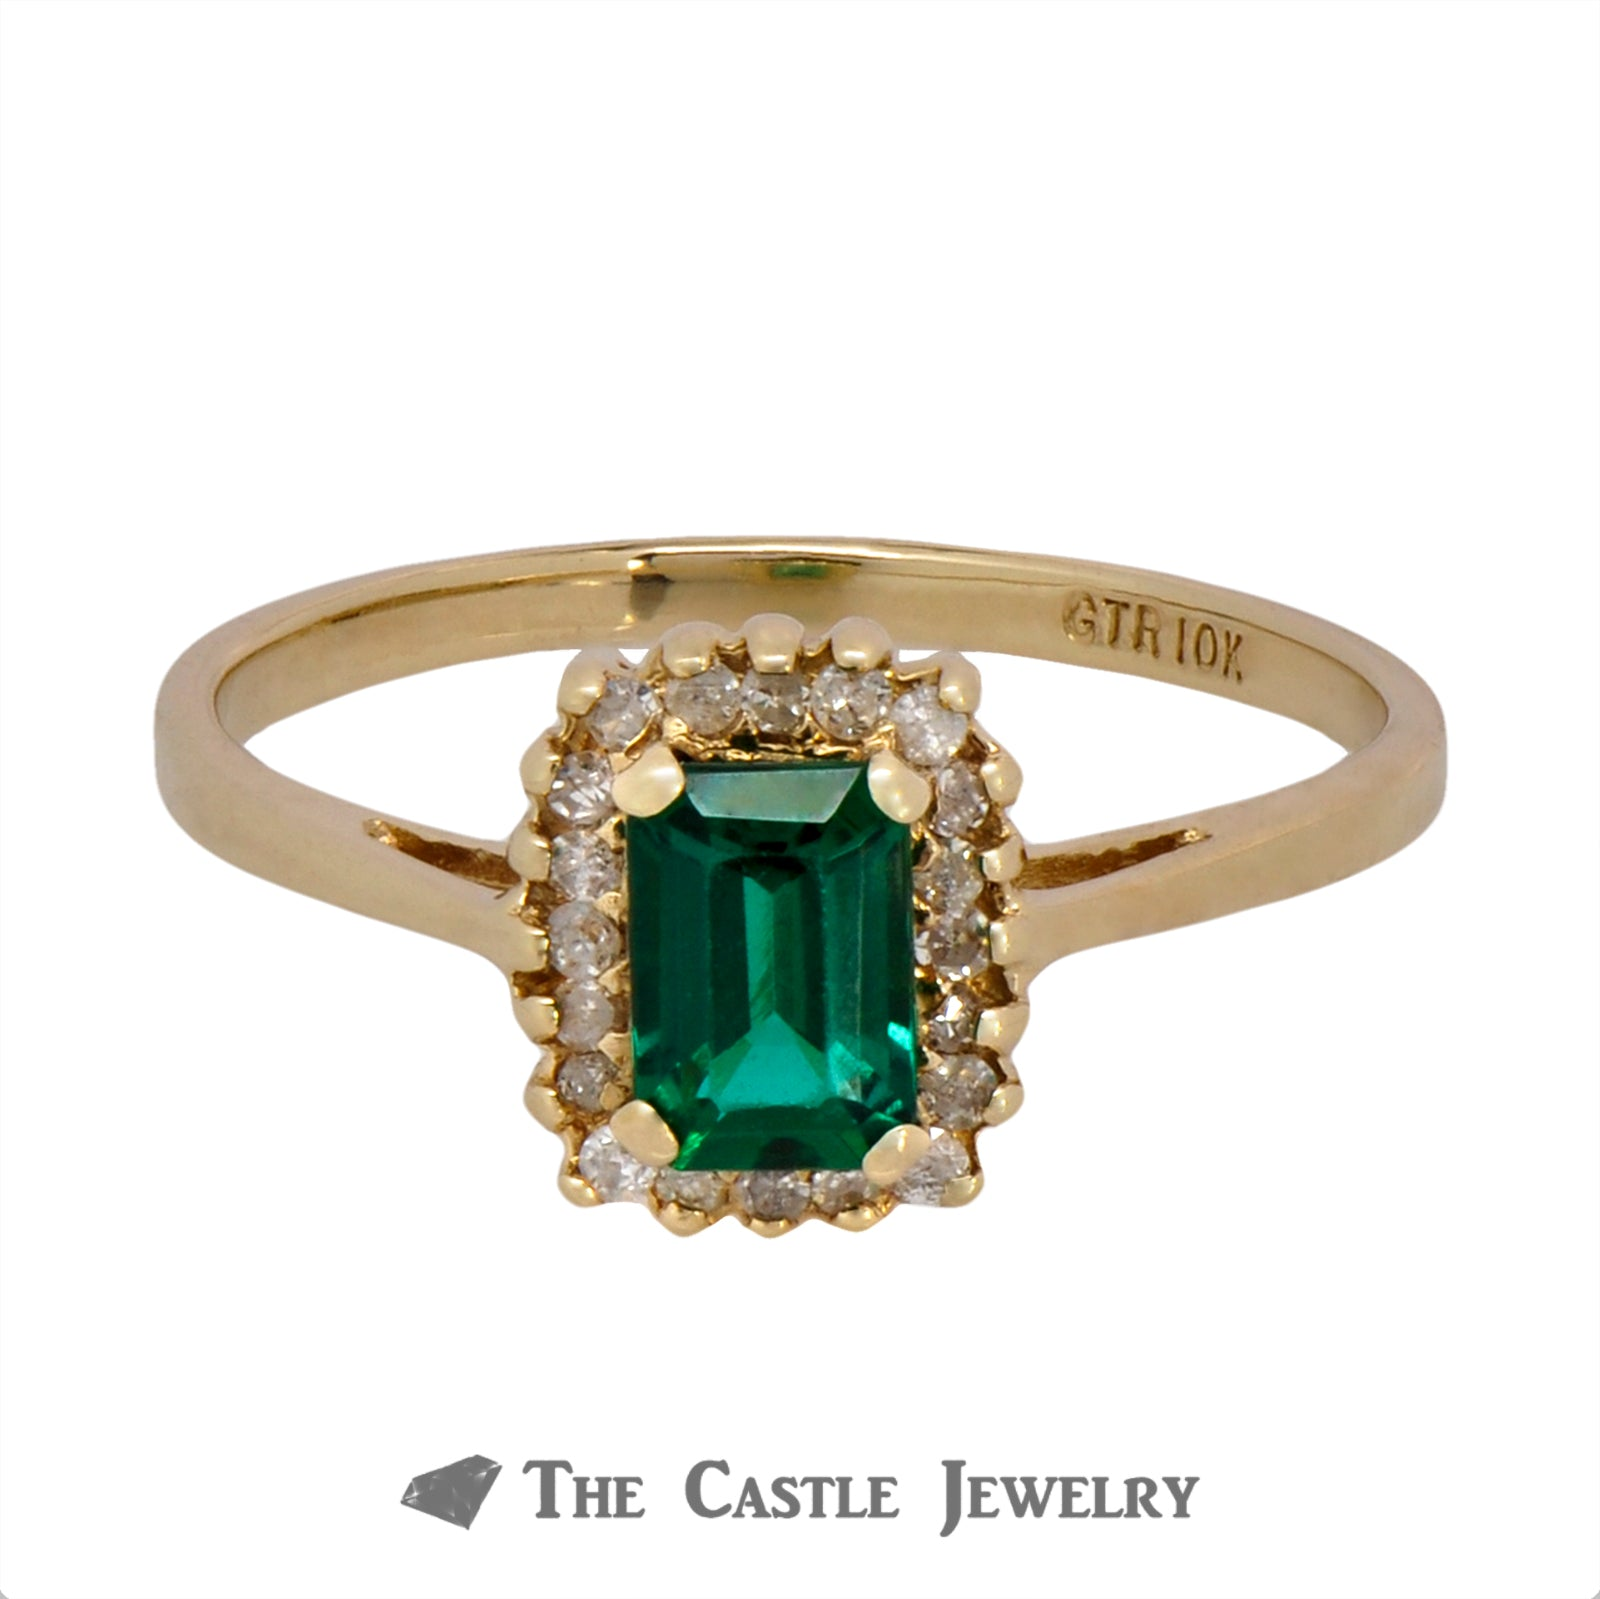 Emerald Ring with Round Brilliant Cut Diamond Halo Crafted in 10k Yellow Gold